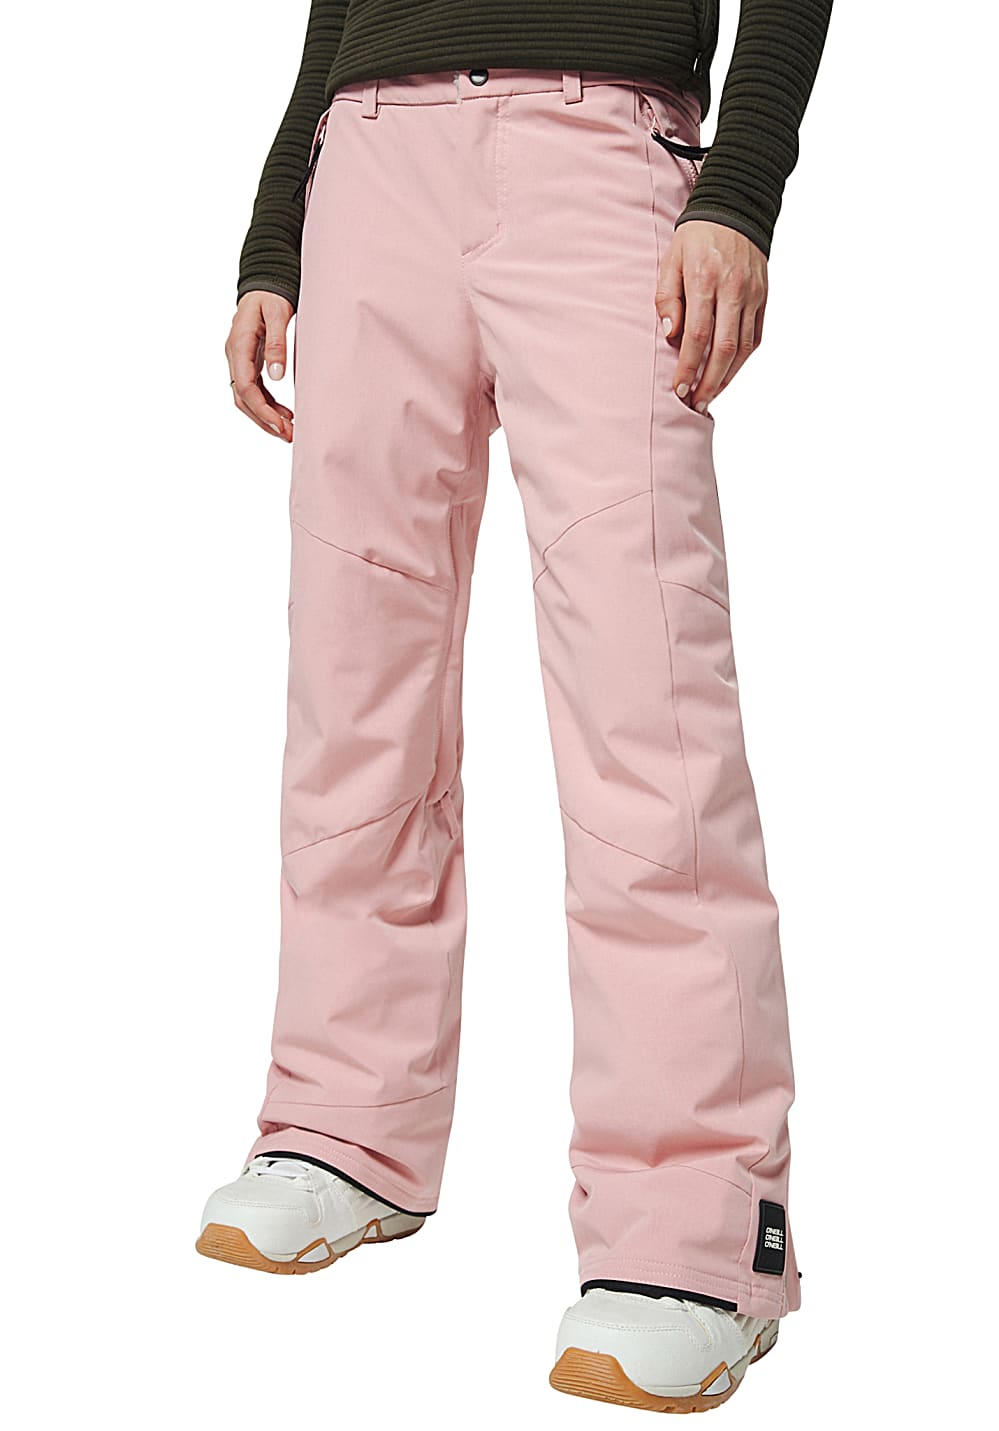 Hosen - O'Neill Streamlined Snowboardhose für Damen Pink  - Onlineshop Planet Sports